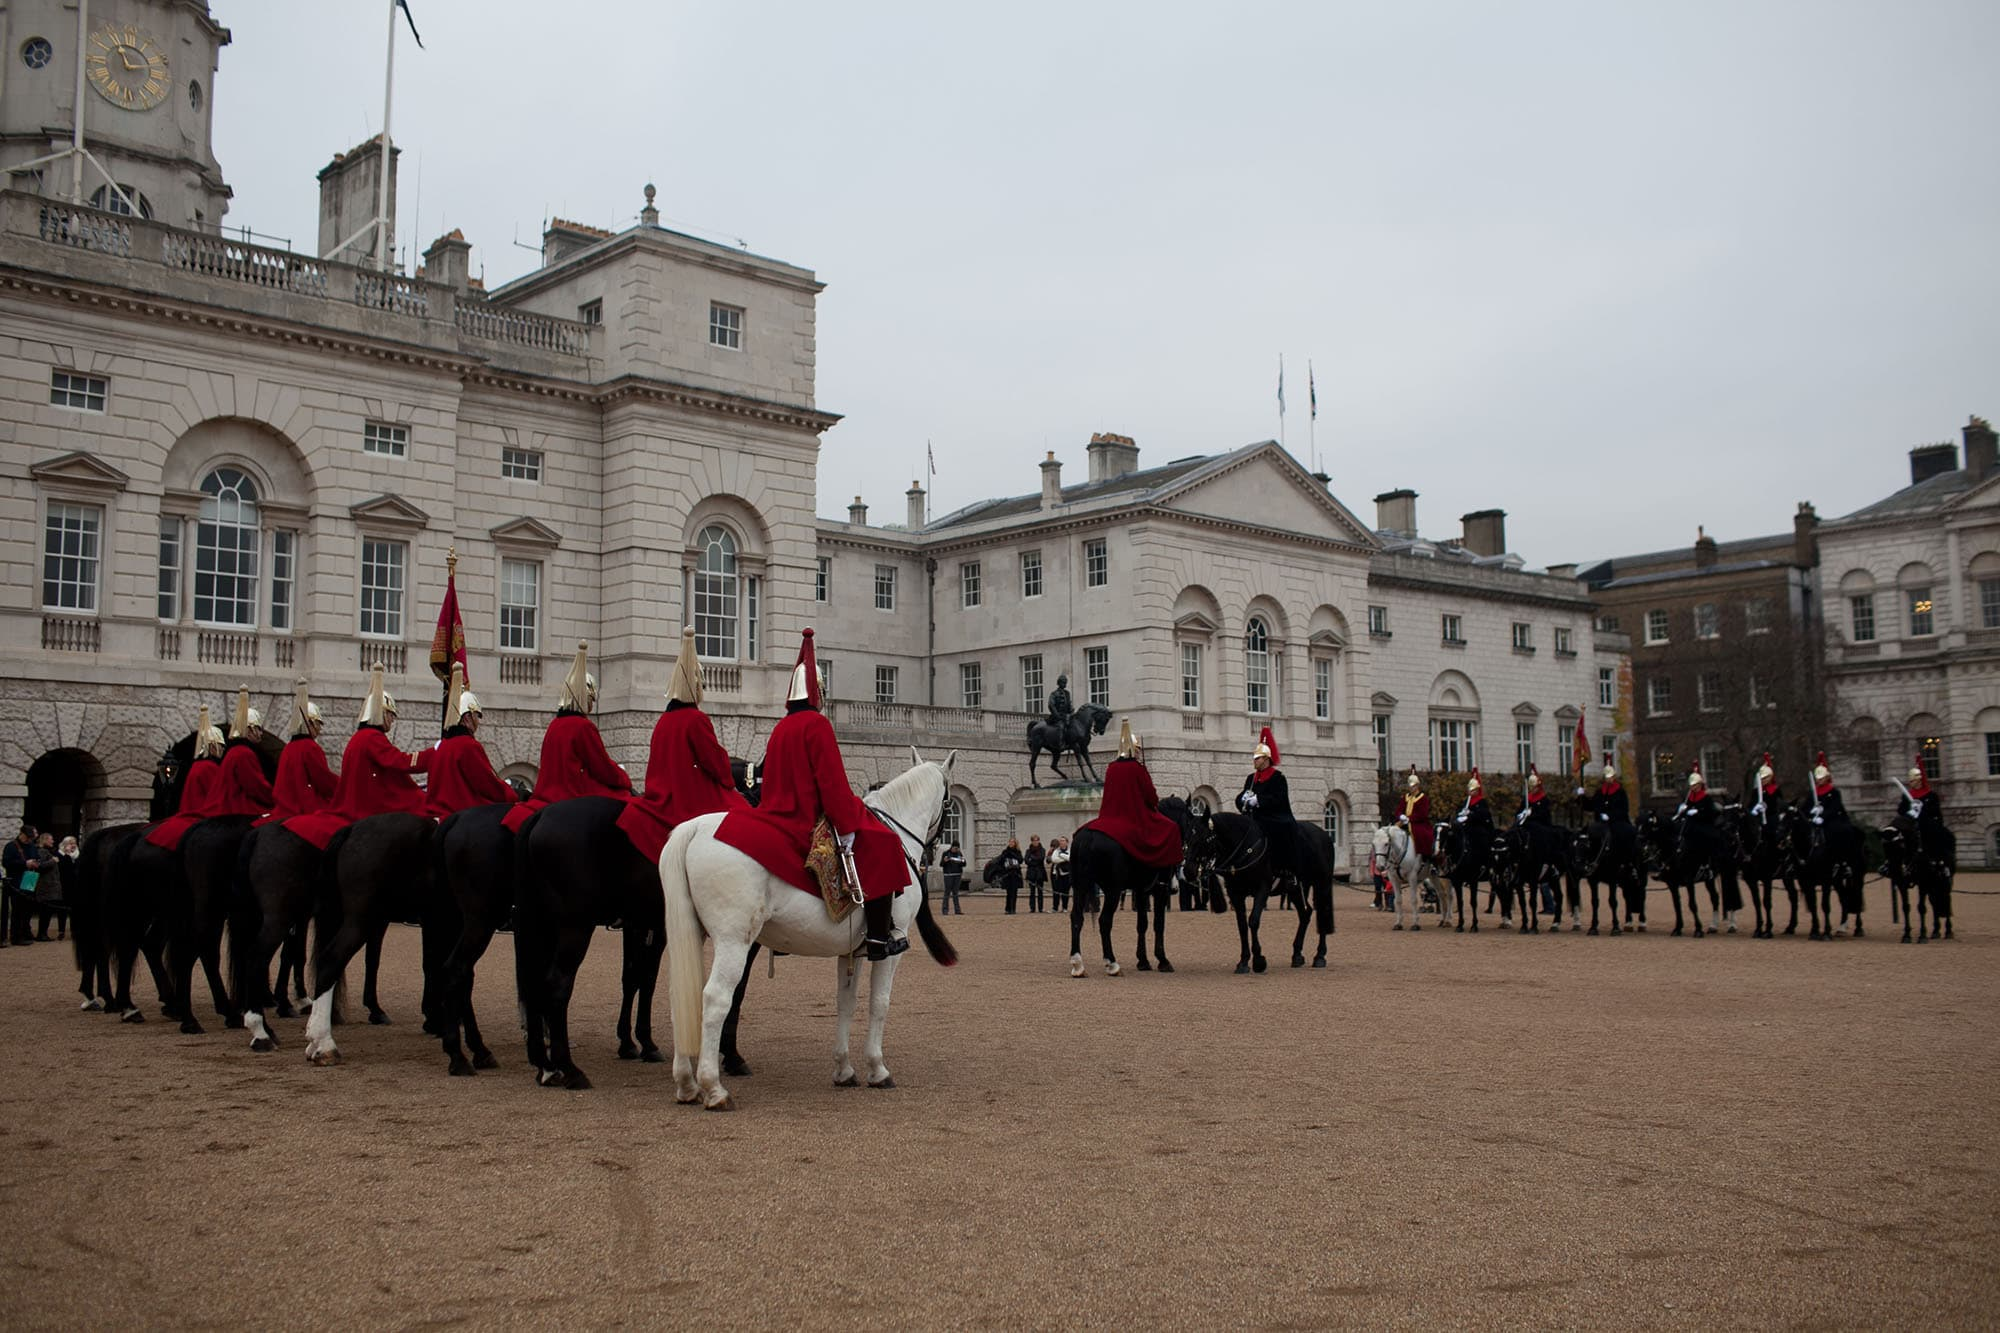 Horse Guards Parade in London, England